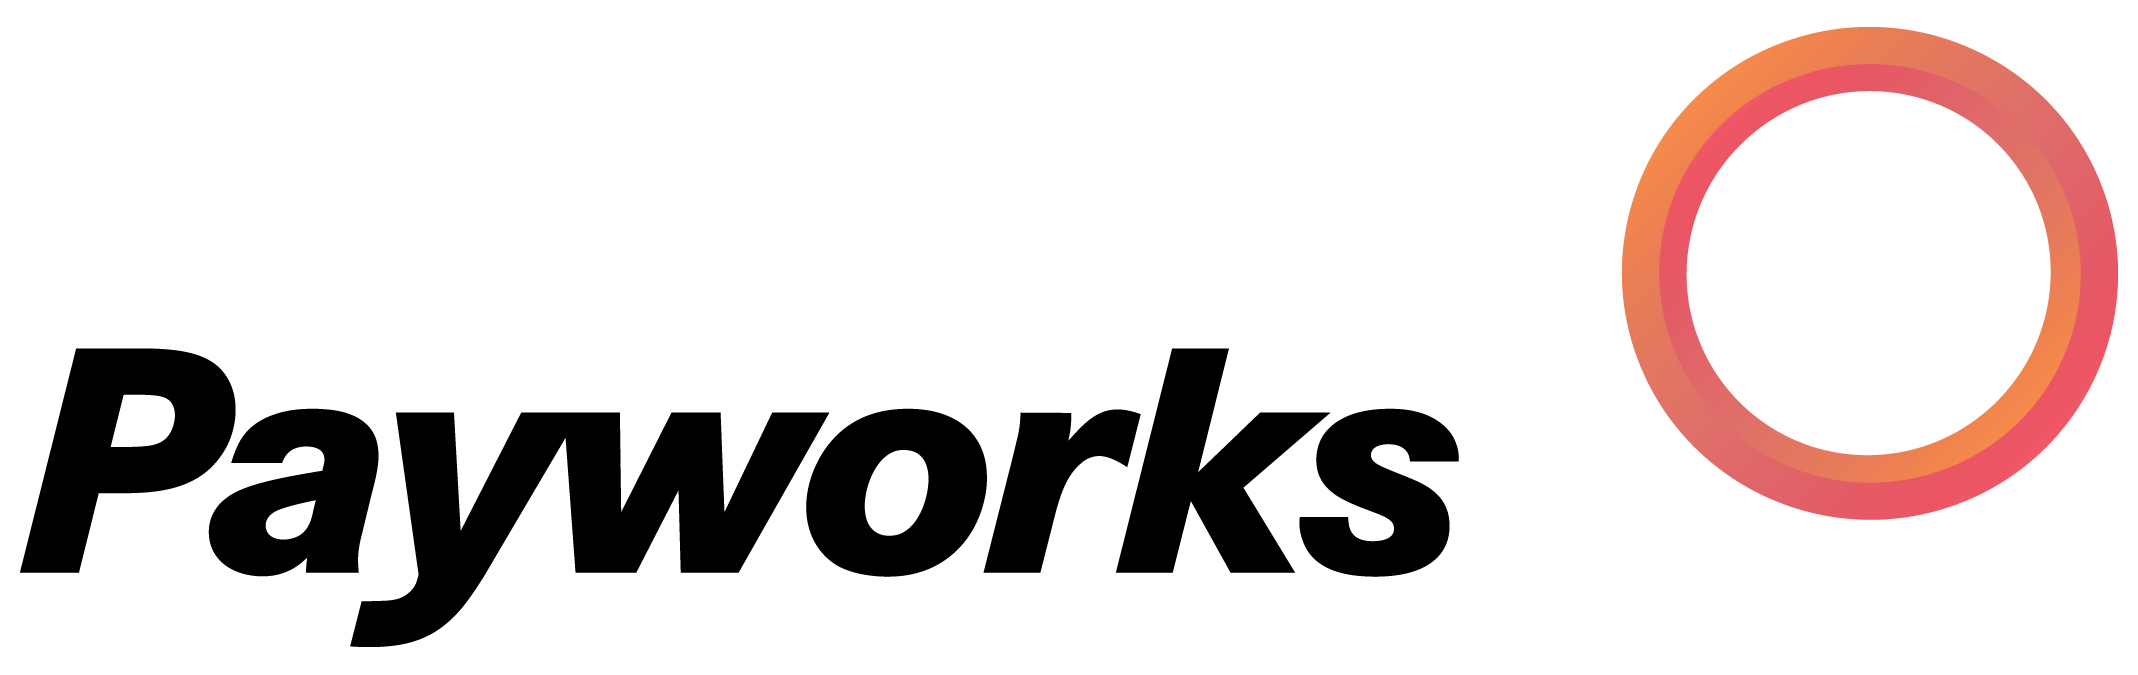 Logo: Payworks - Ottolearn Microlearning